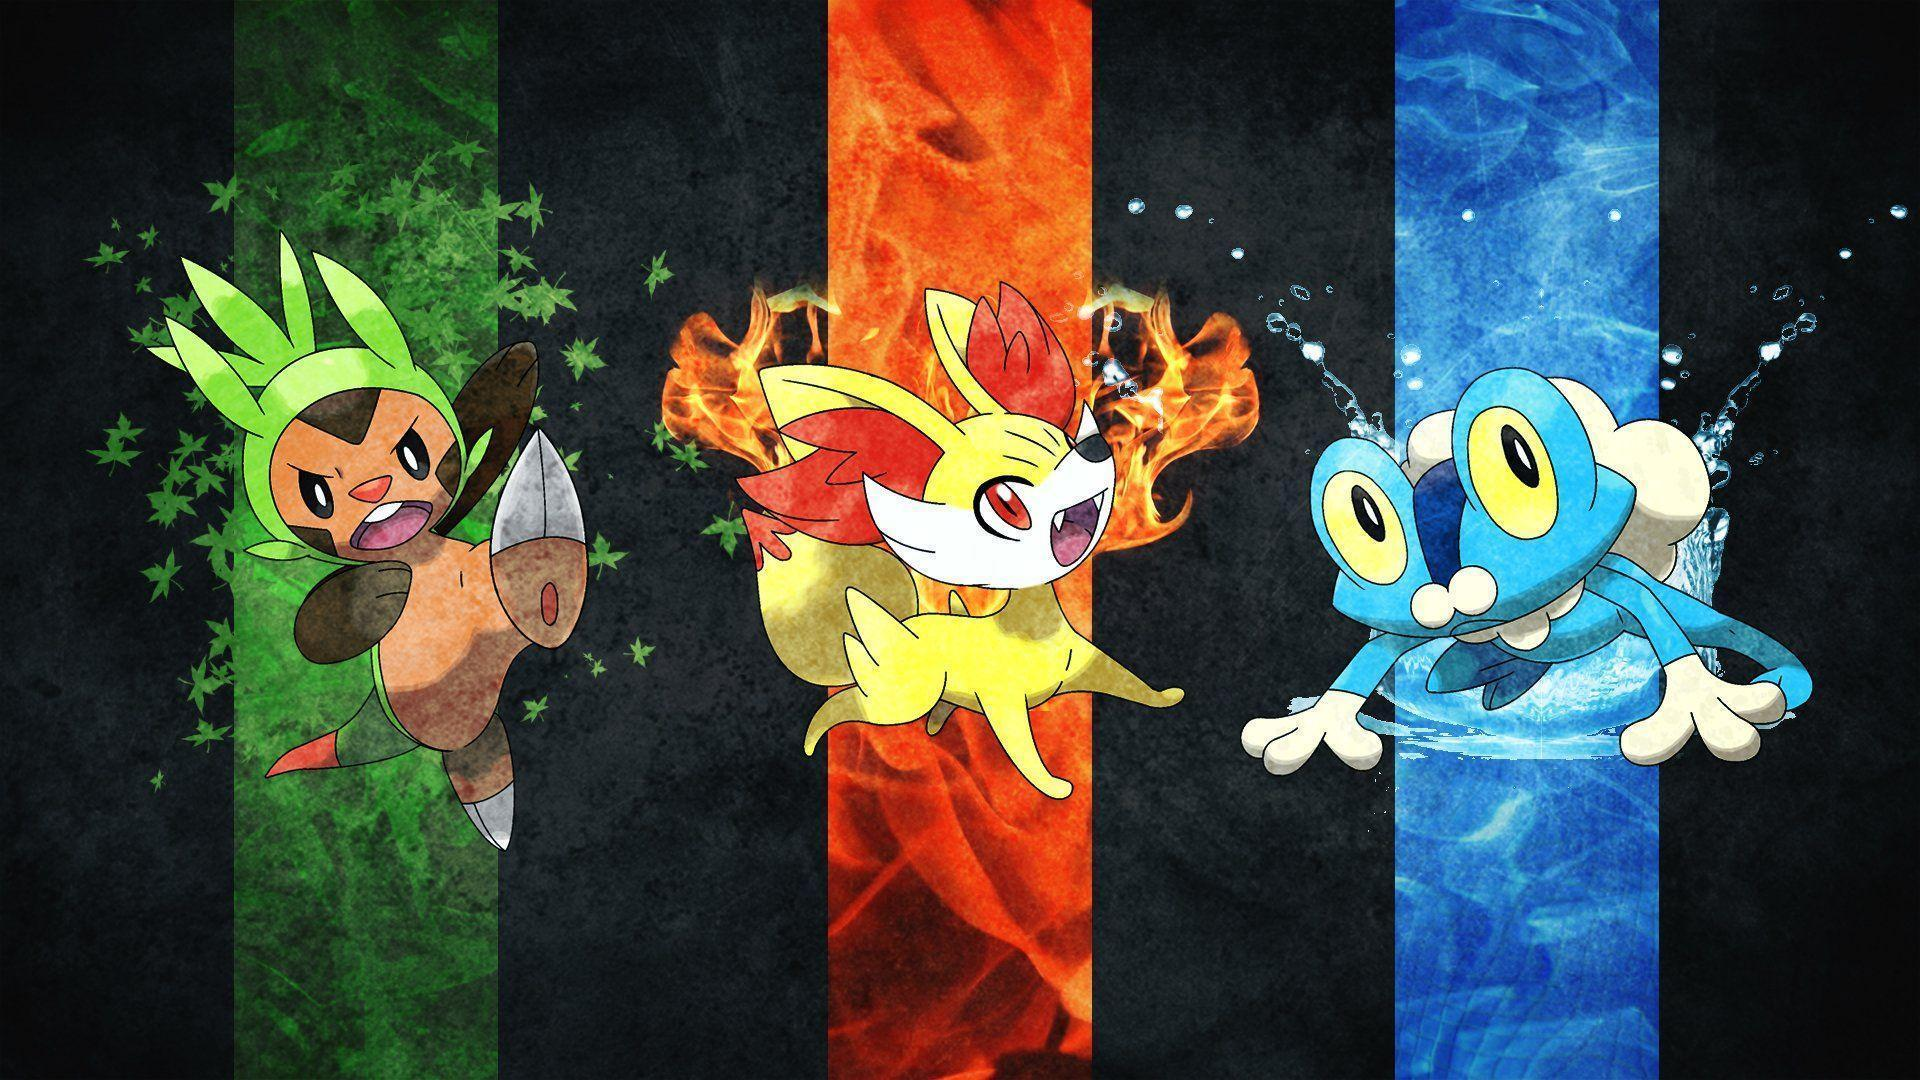 15 Fennekin (Pokémon) HD Wallpapers | Background Images - Wallpaper ...